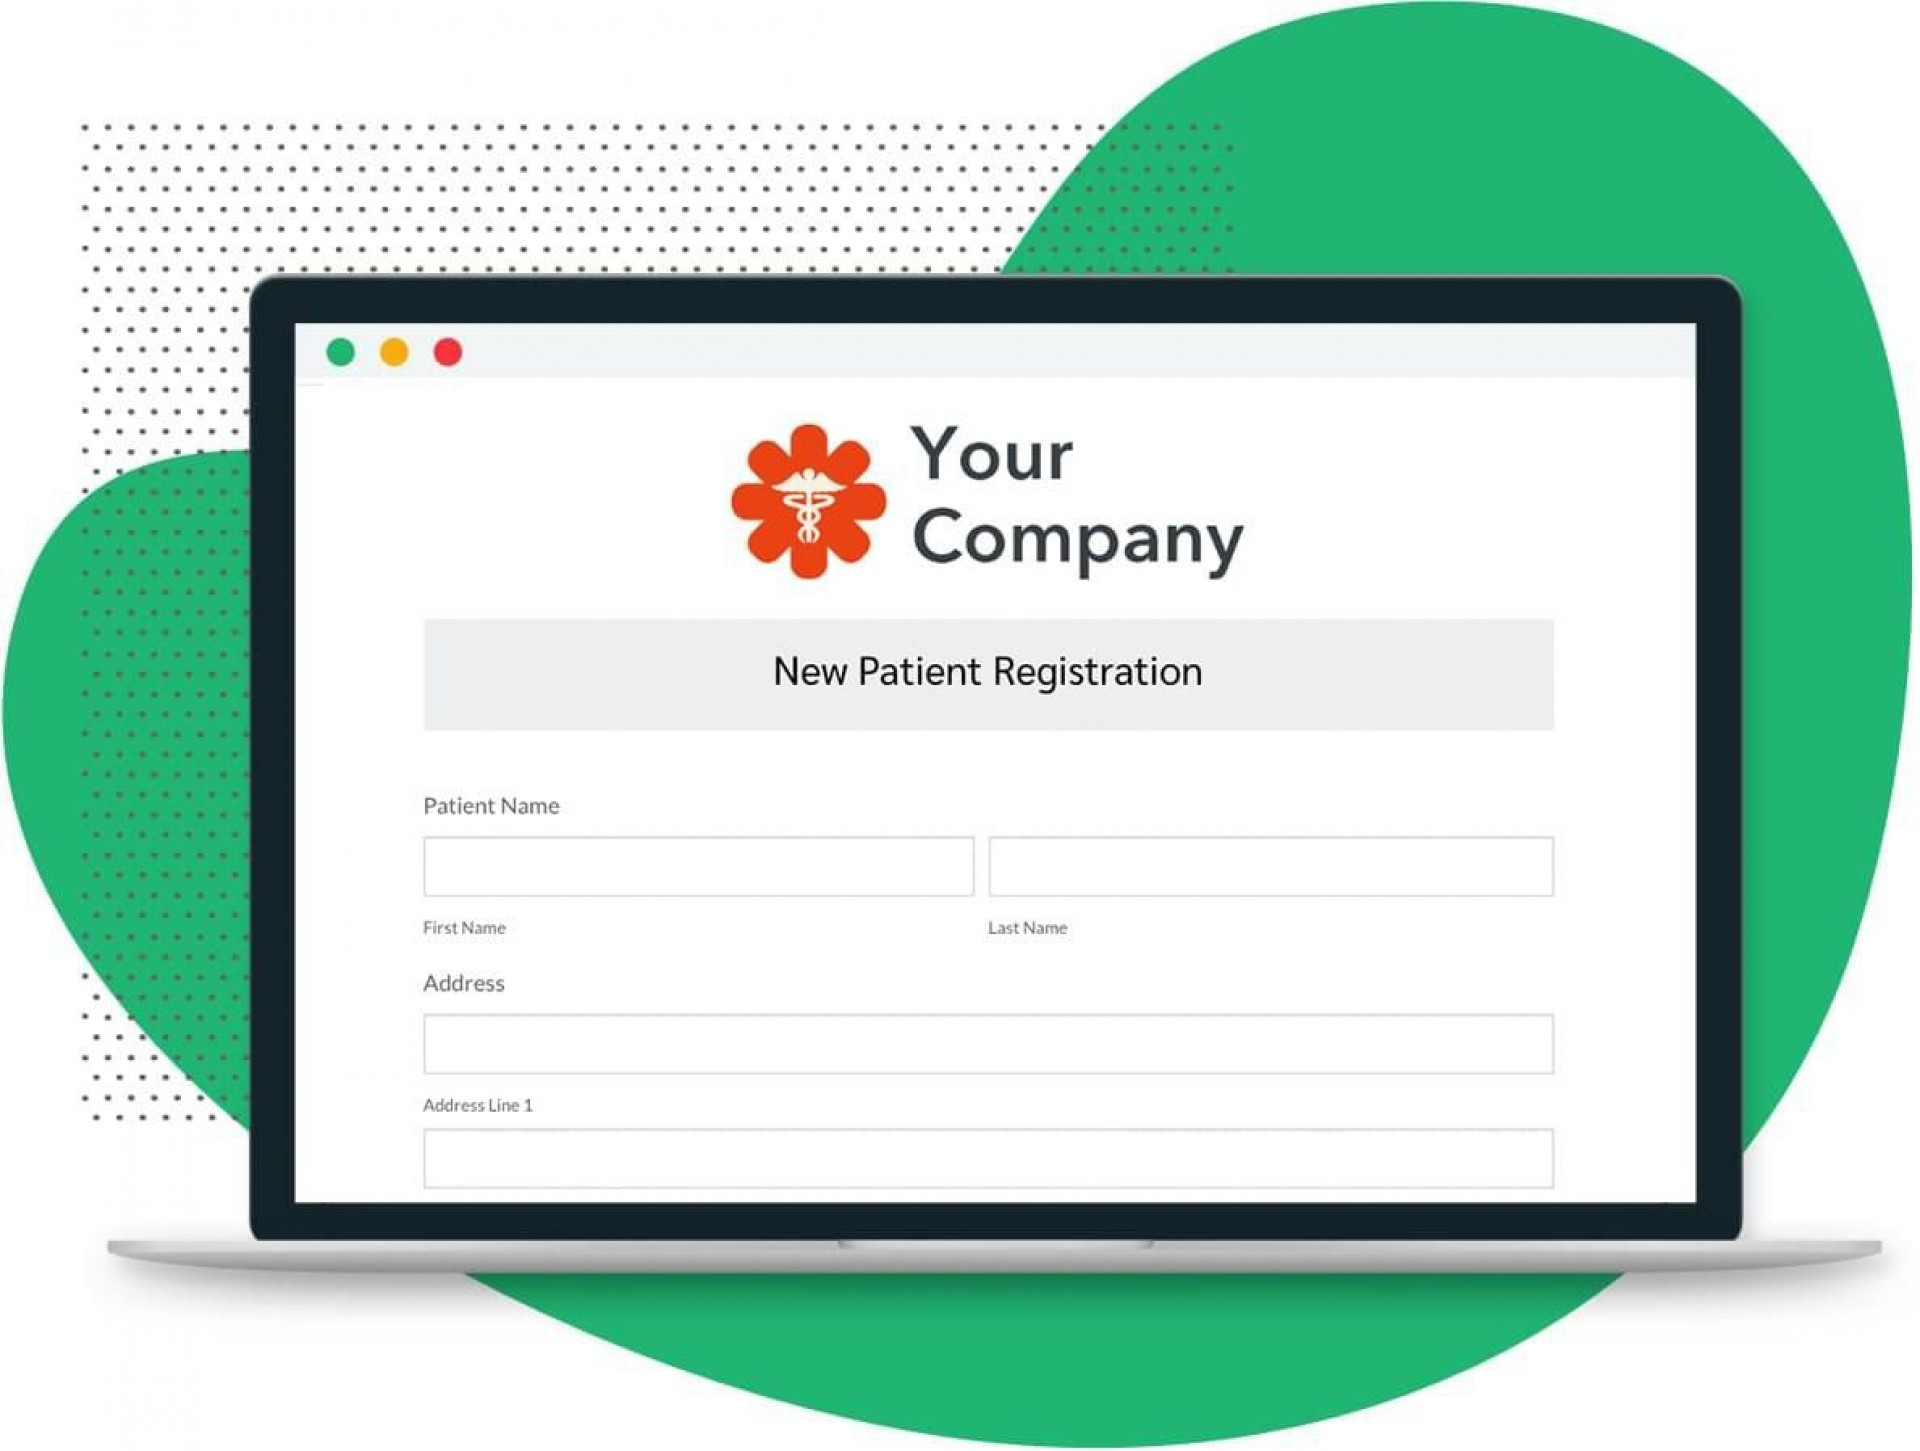 008 Magnificent Patient Information Form Template Inspiration  Word Update1920